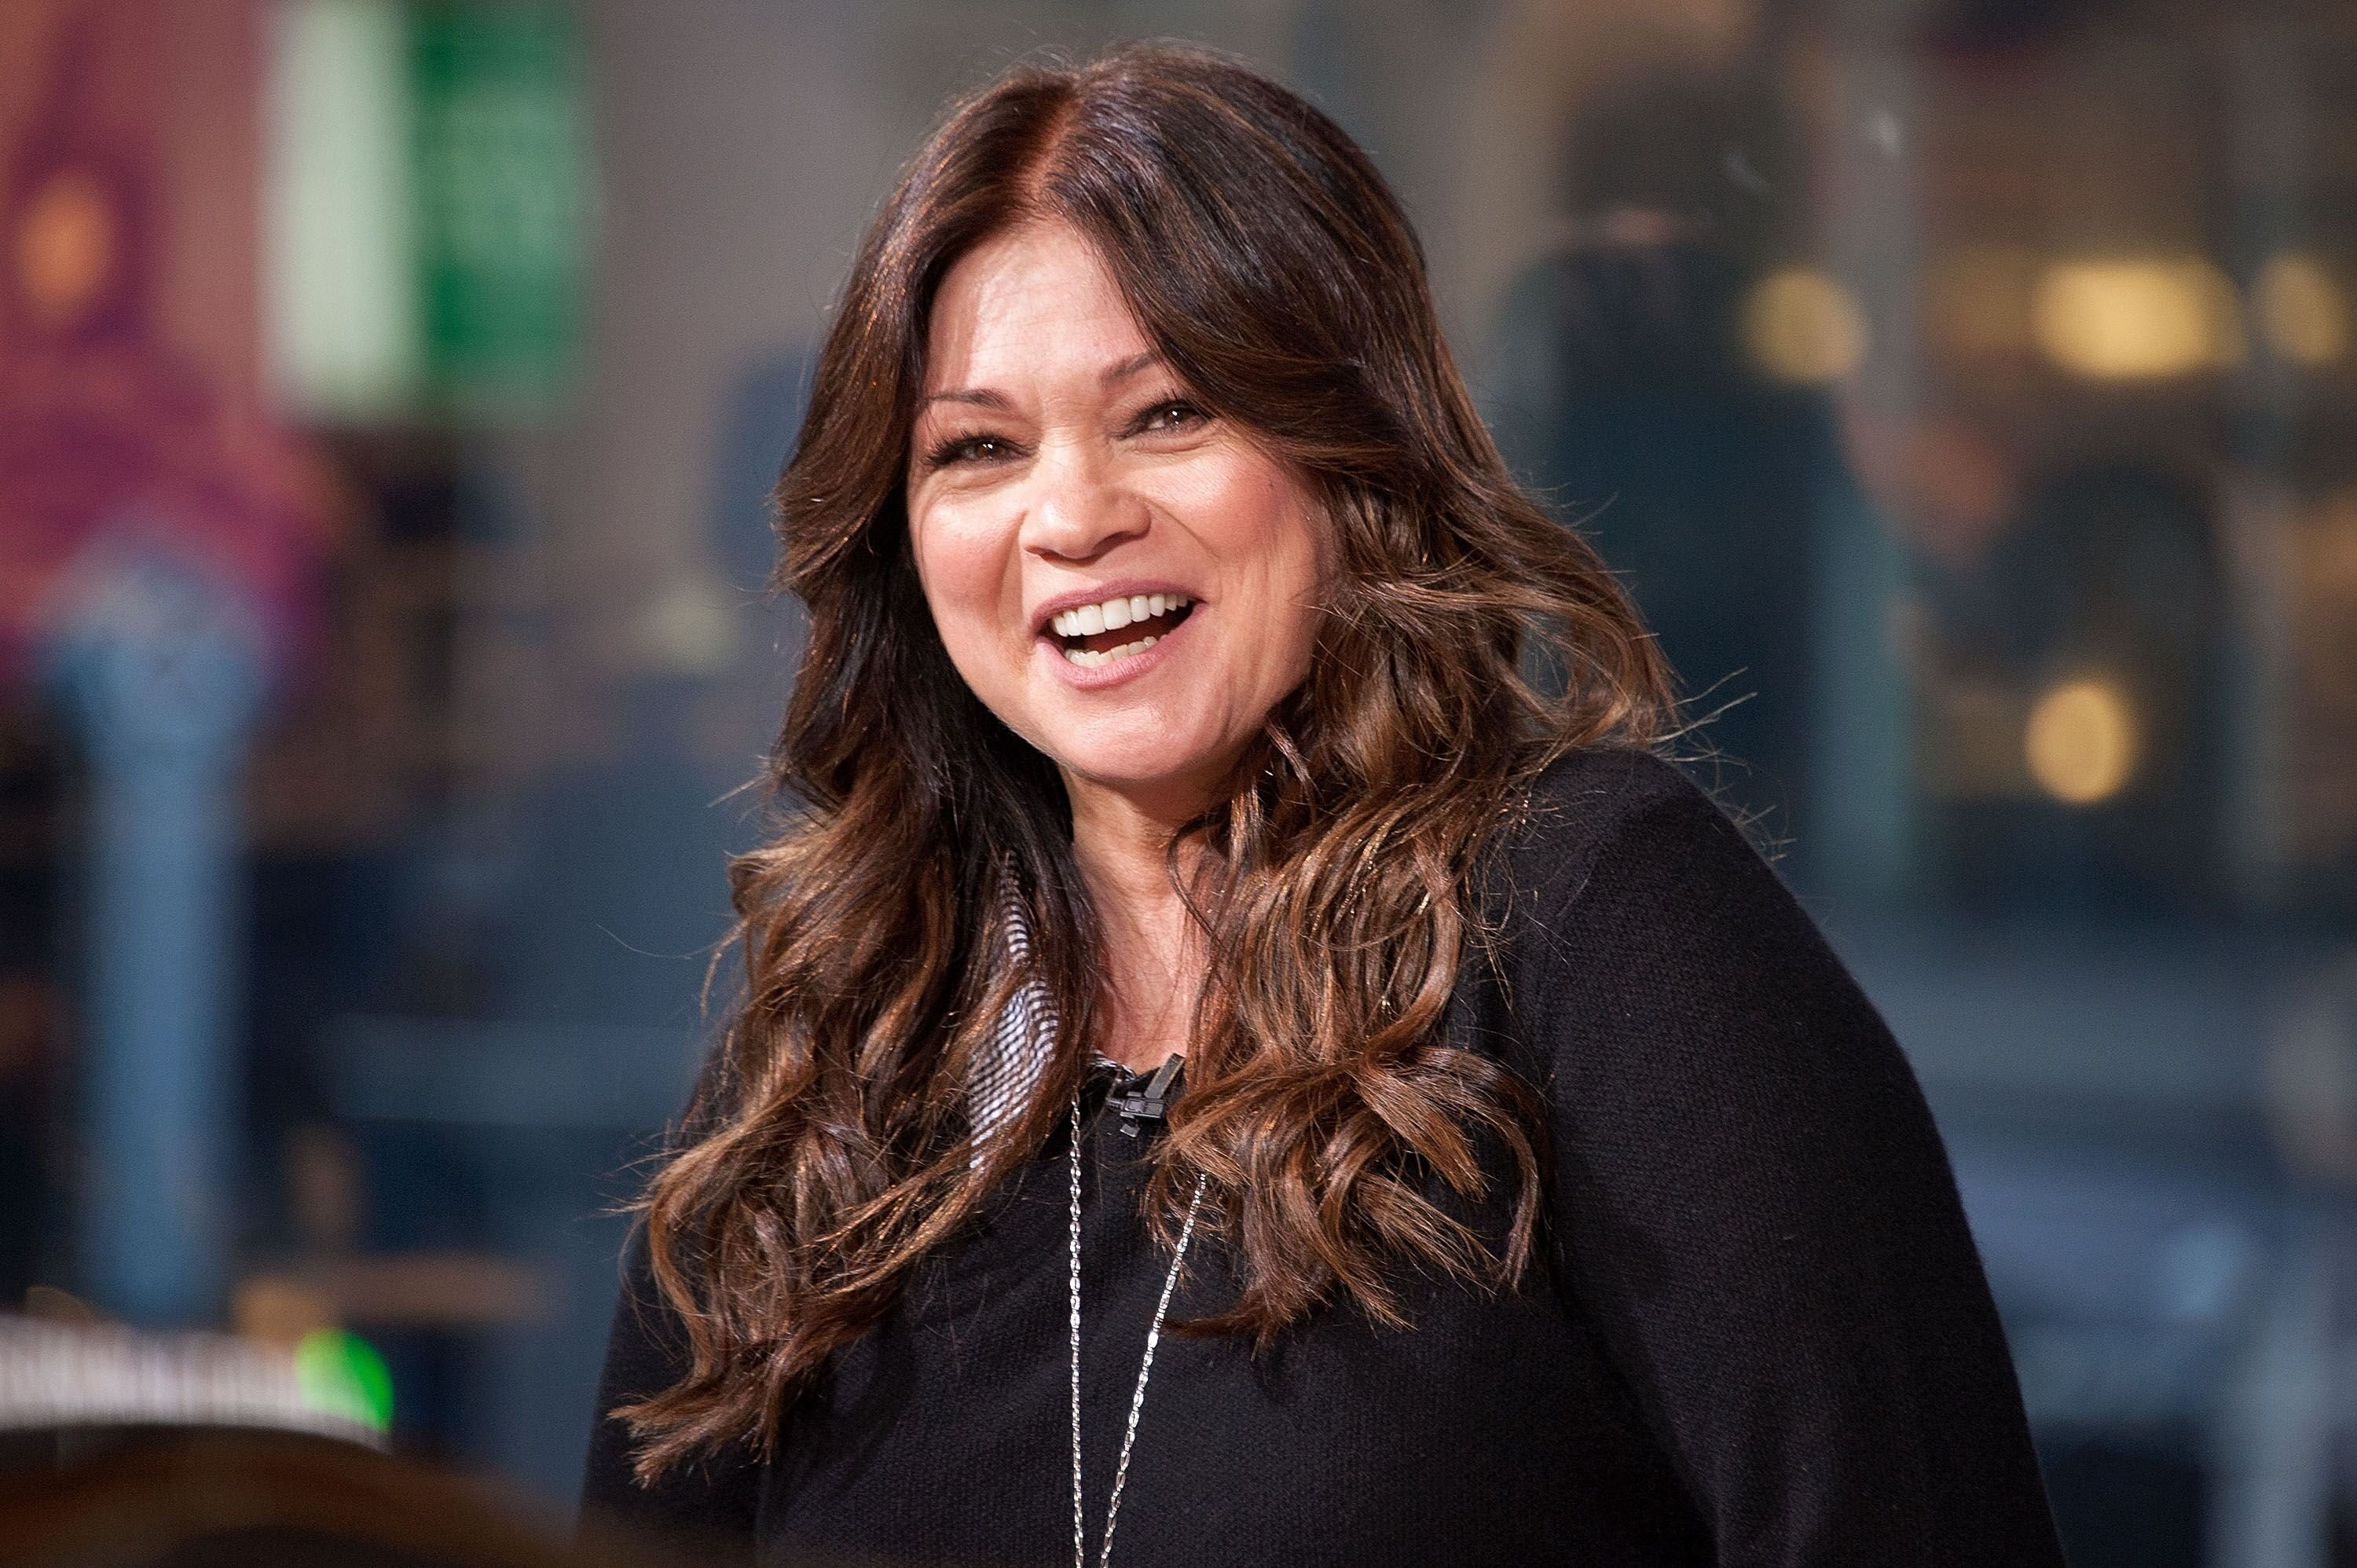 Valerie Bertinelli Opens Up About Working Hard On Her Weight Loss Journey